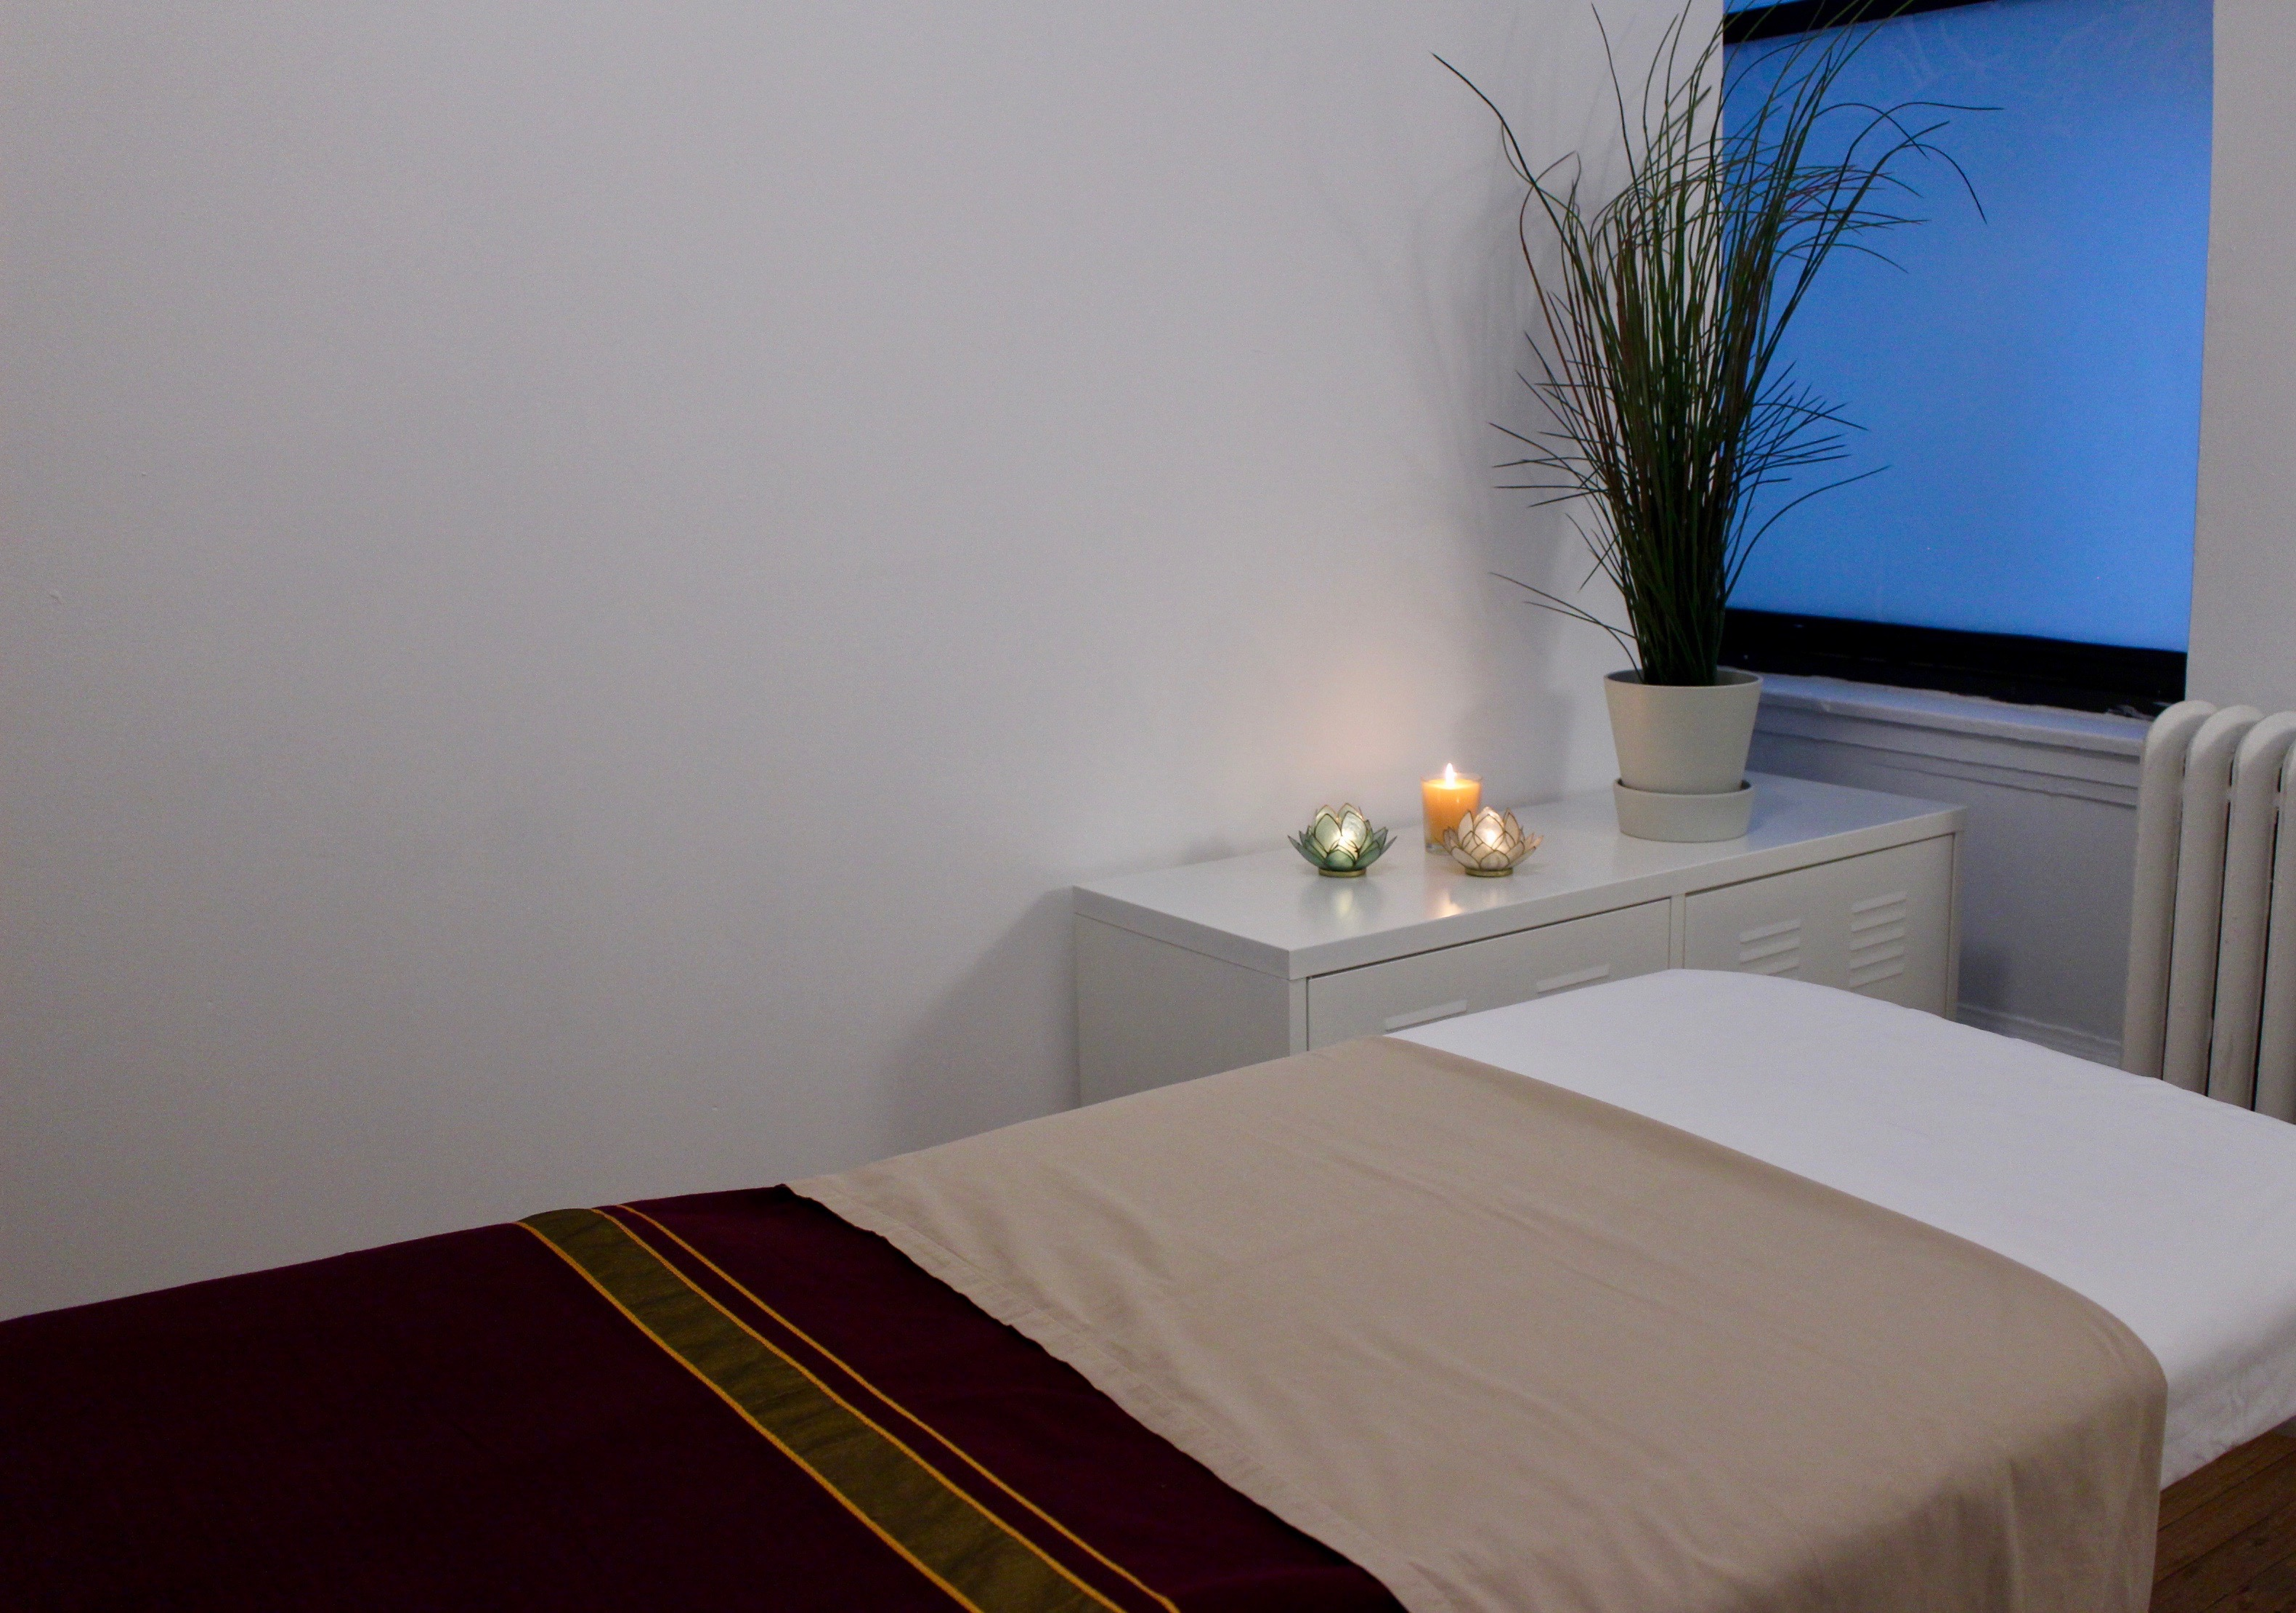 Cheap Rooms For Rent In Nyc >> Physical Therapy Associates Of New York Treatment Room For Rent